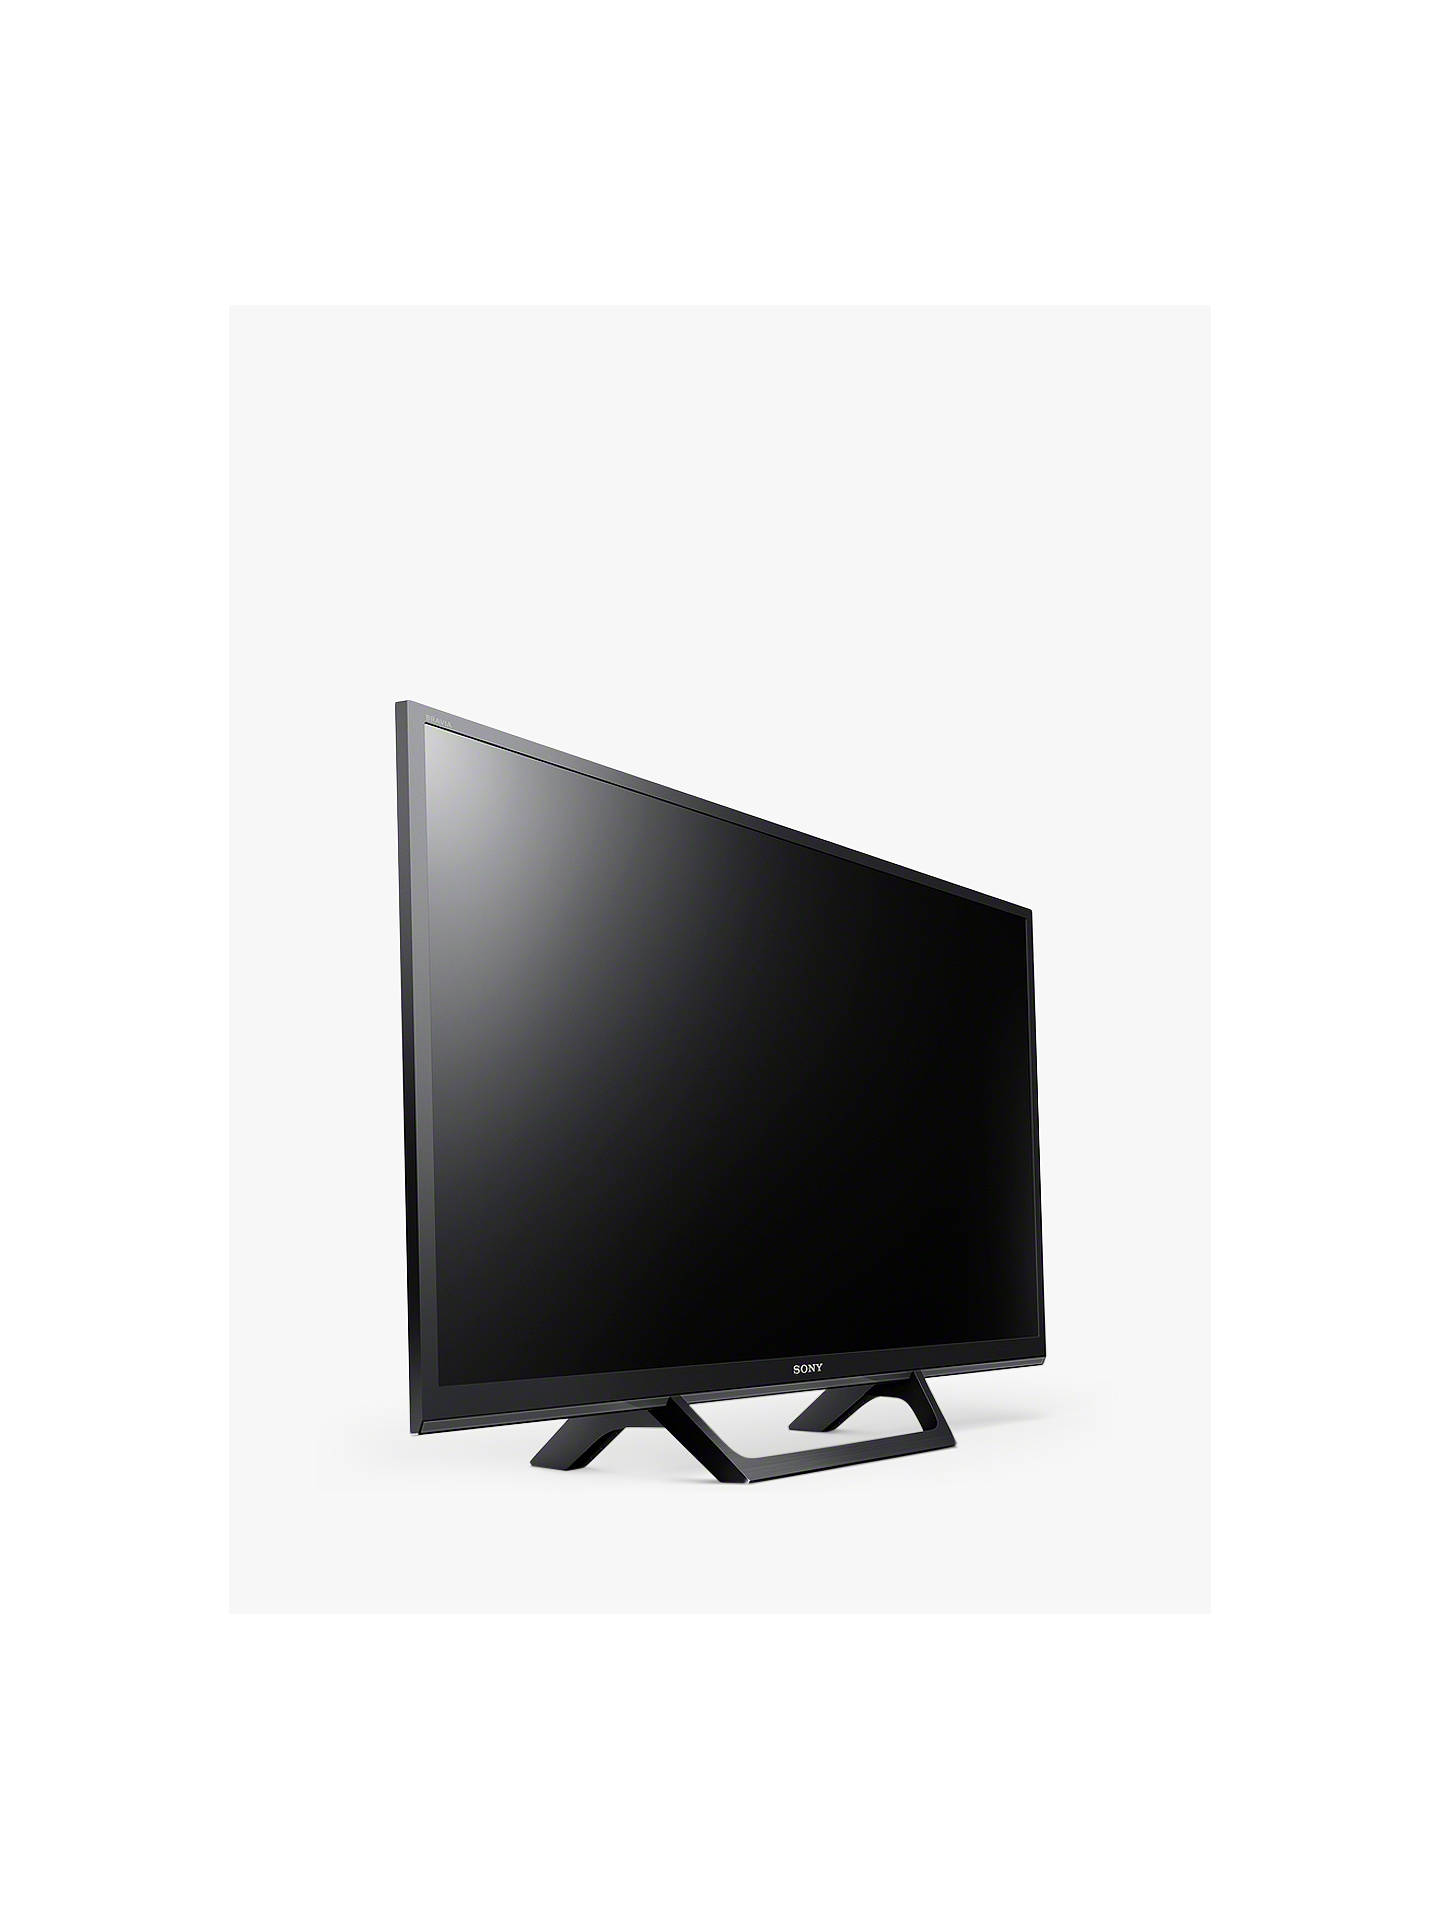 Sony Bravia KDL32WE613 LED HDR HD Ready 720p Smart TV, 32